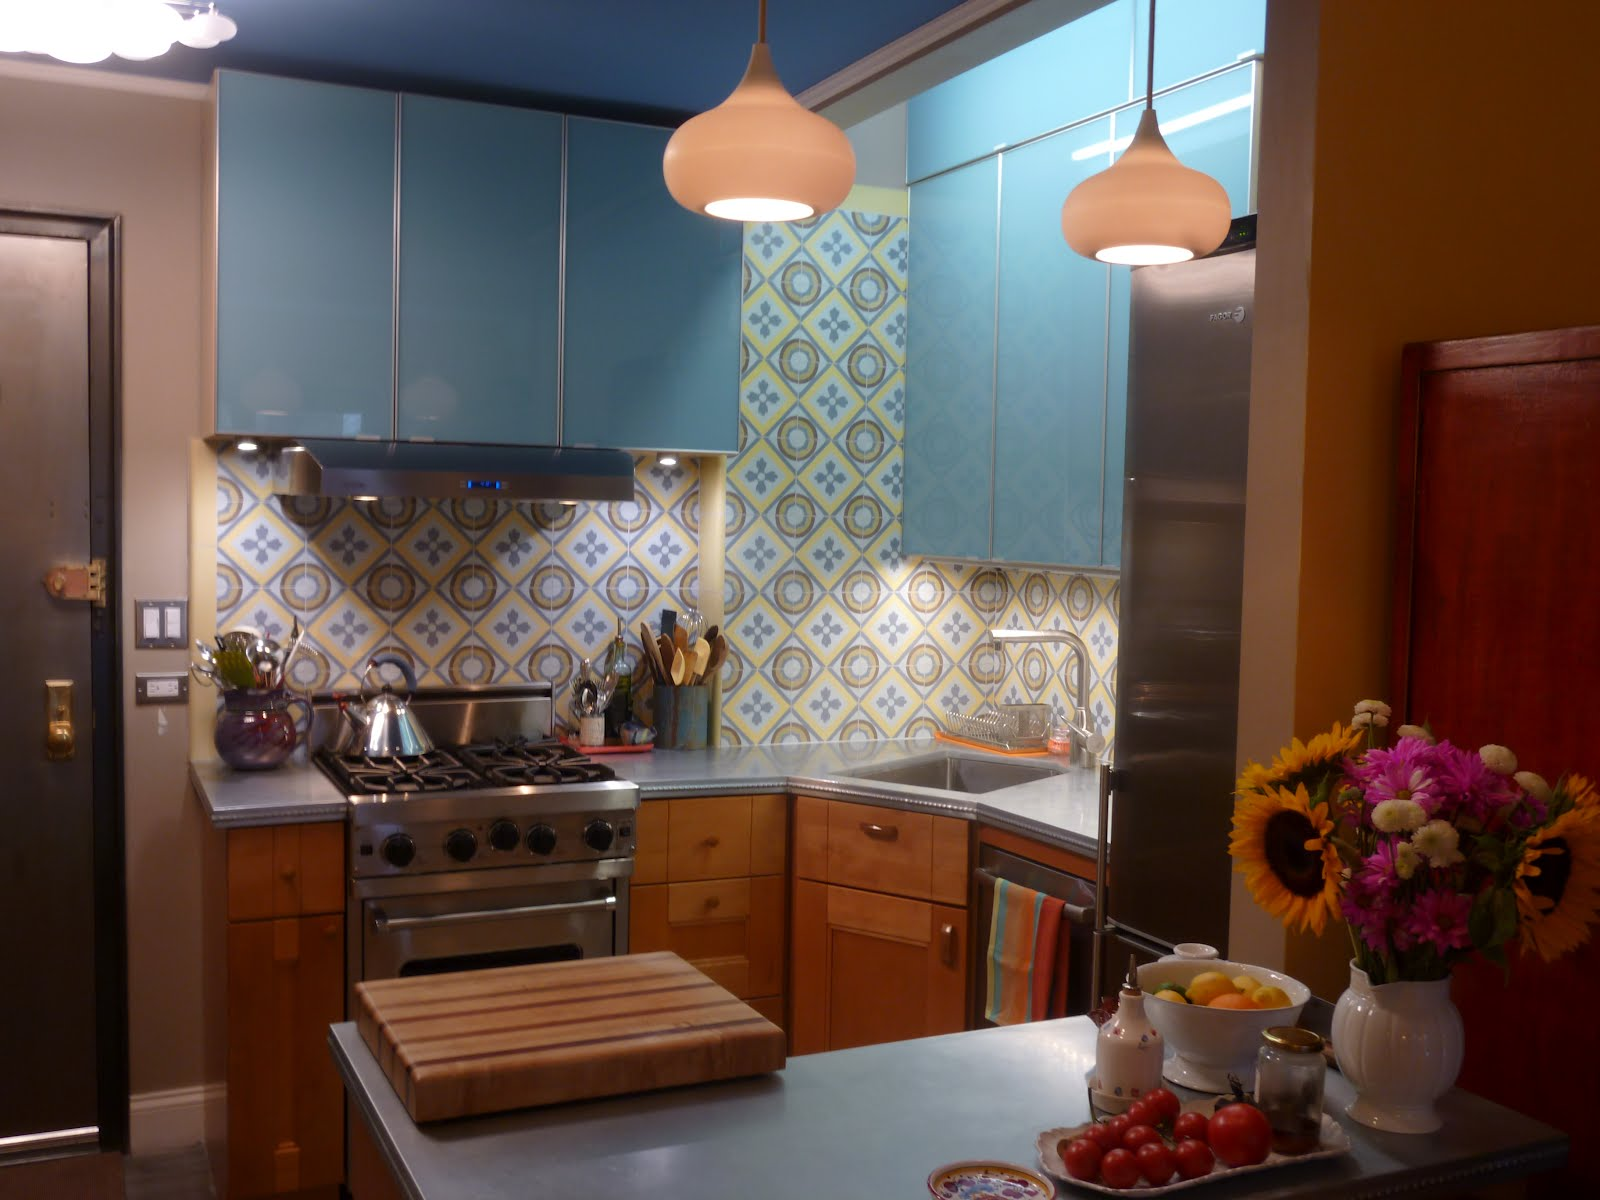 hand painted tiles kitchen backsplash gramp us avente tile talk a cement tile kitchen backsplash makes a chelsea